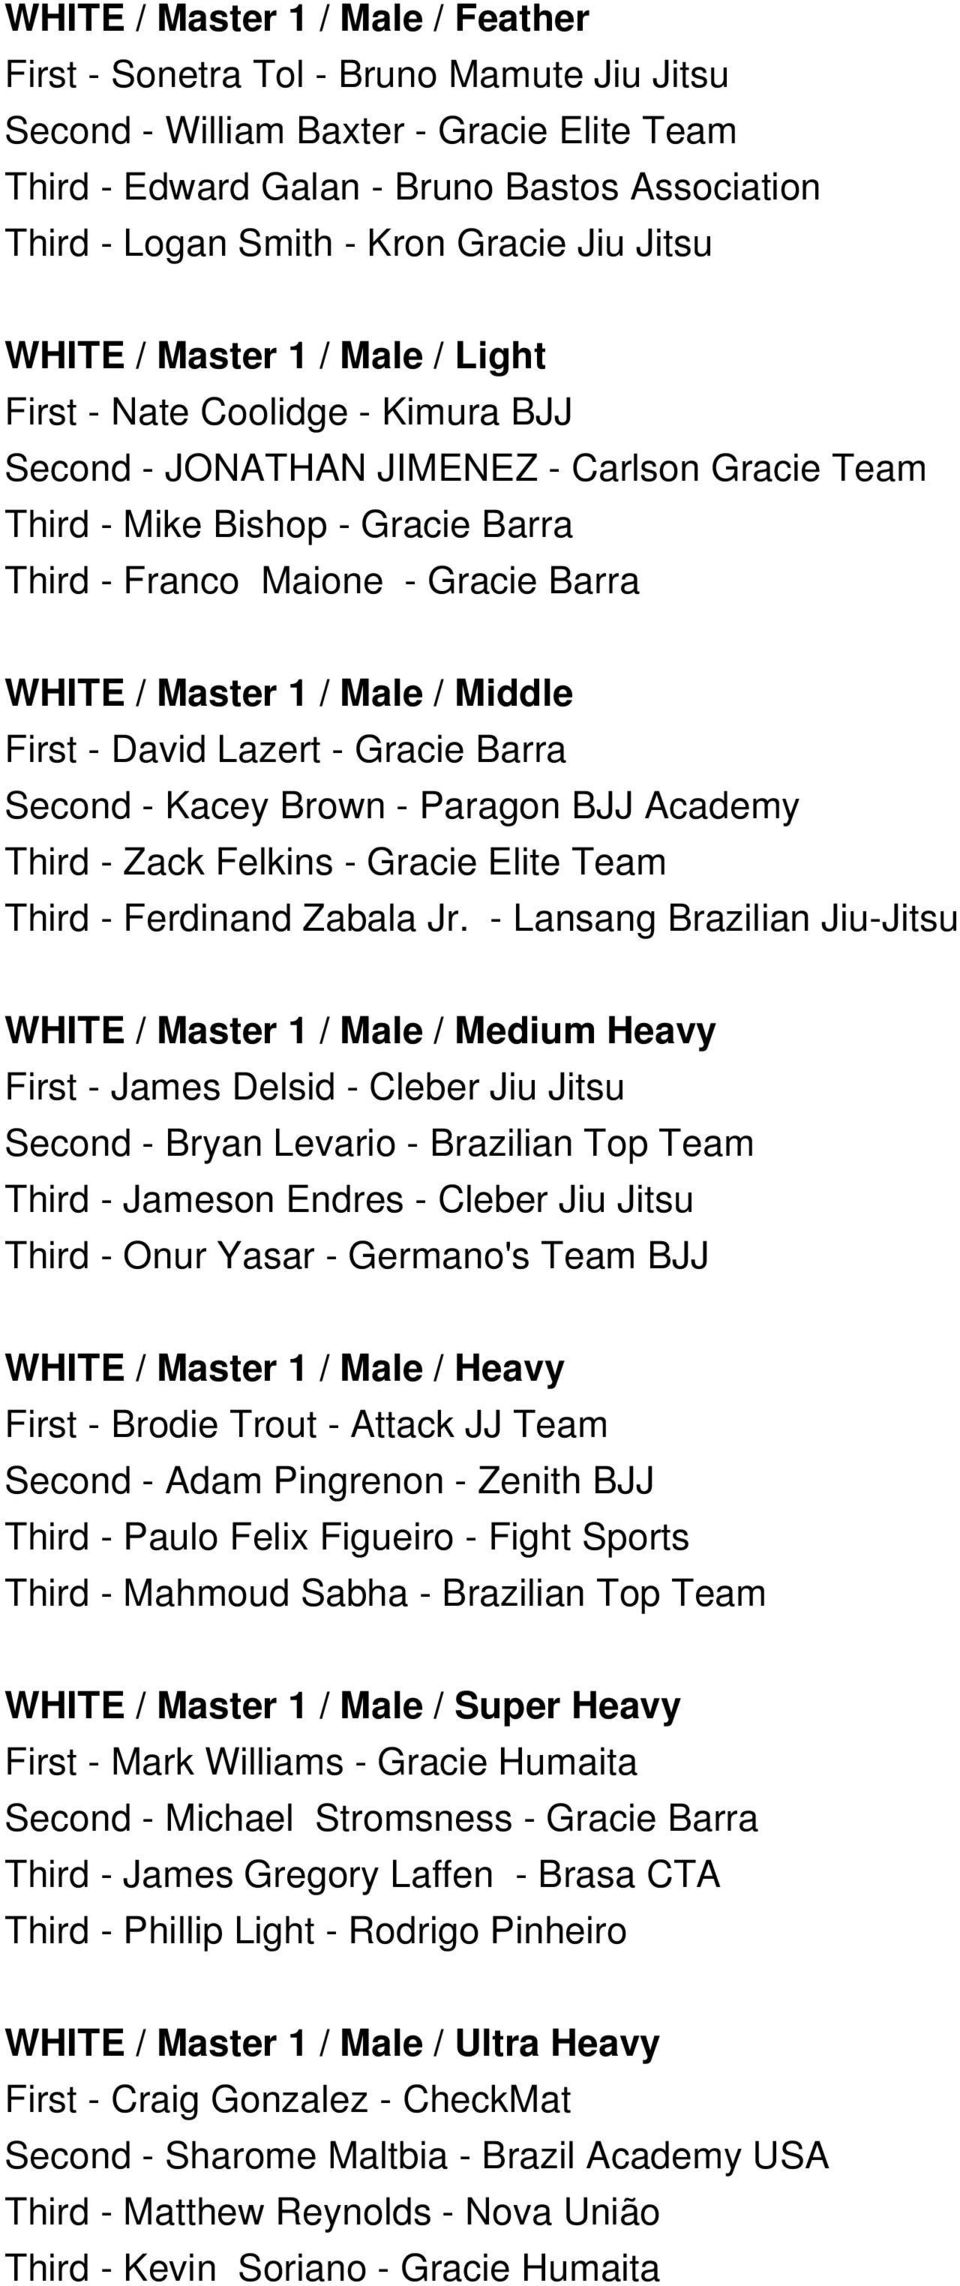 Barra WHITE / Master 1 / Male / Middle First - David Lazert - Gracie Barra Second - Kacey Brown - Paragon BJJ Academy Third - Zack Felkins - Gracie Elite Team Third - Ferdinand Zabala Jr.